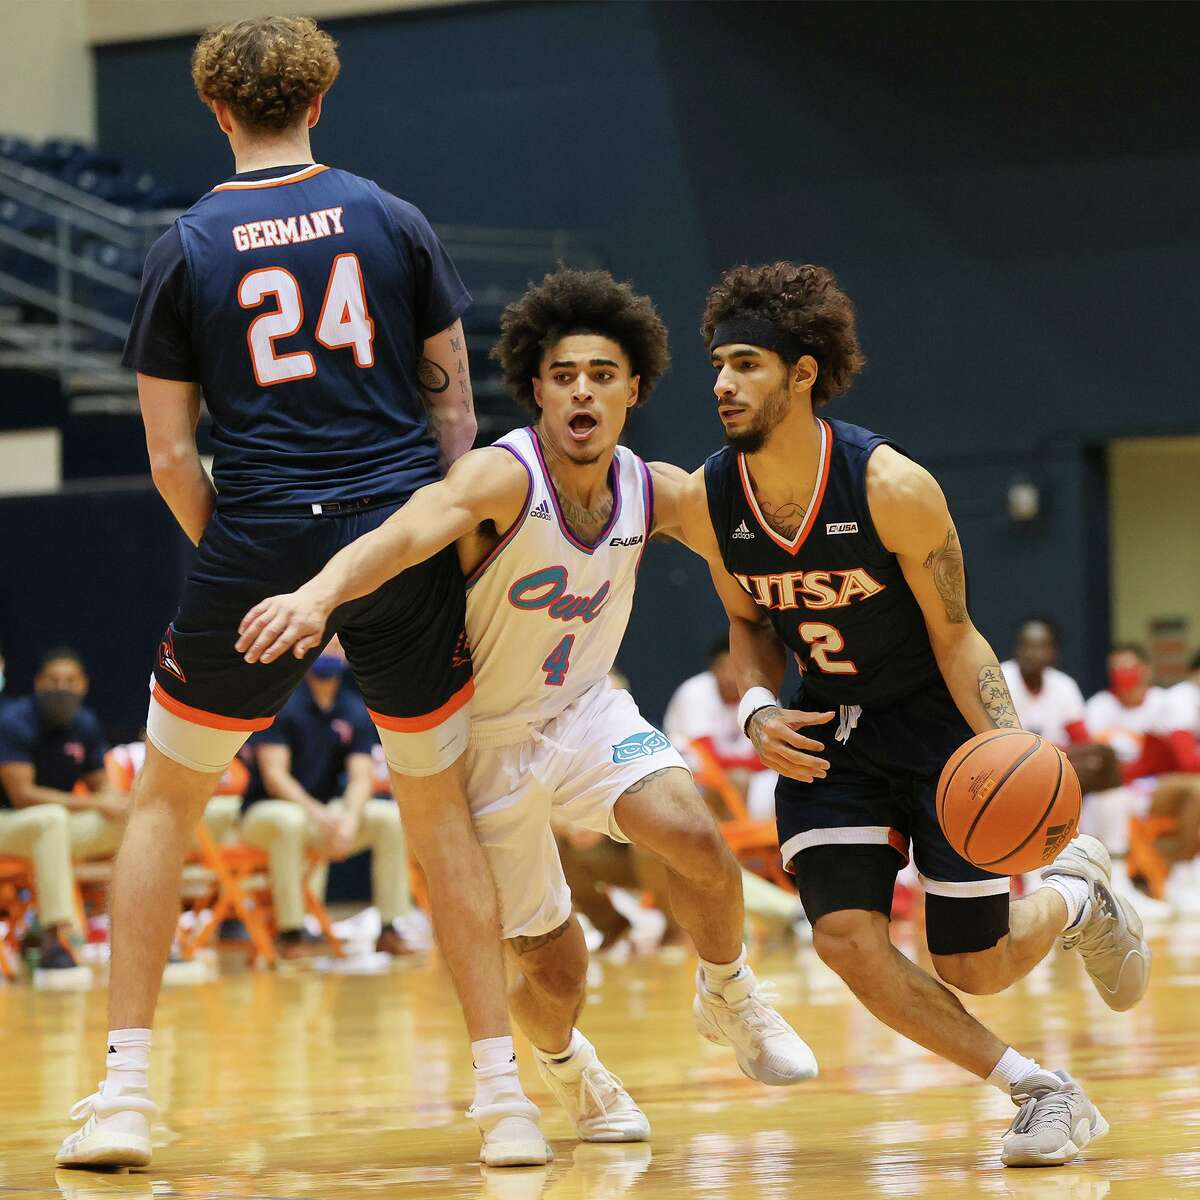 UTSA's Jhivvan Jackson, right, drives by Florida Atlantic's BJ Greenlee as Jacob Germany sets a pick during the second half of their Men's Conference USA basketball game at the Convocation Center on Saturday, Feb. 13, 2021. UTSA beat the Owls 86-75.